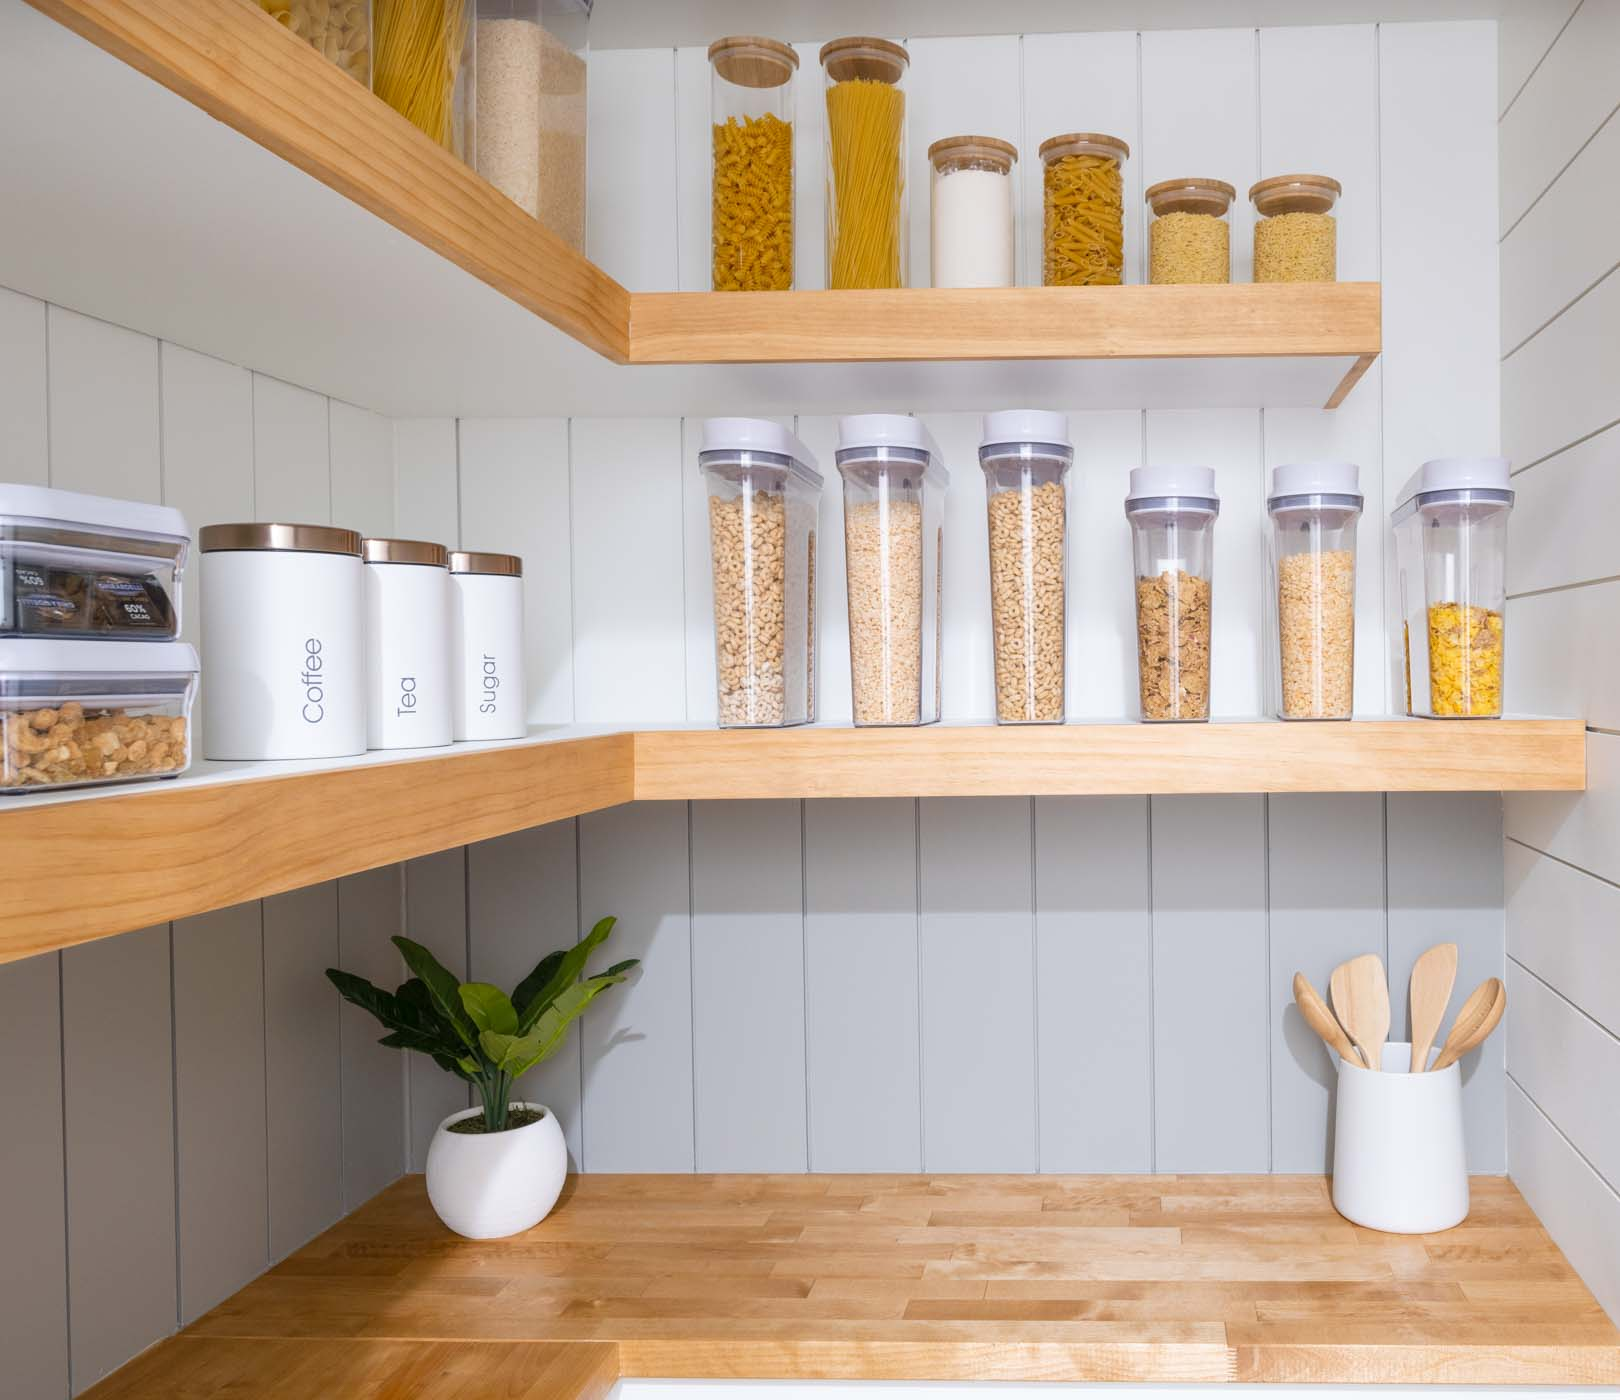 a picture of a pantry with white and gray shiplap walls, shelves, a countertop and storage containers